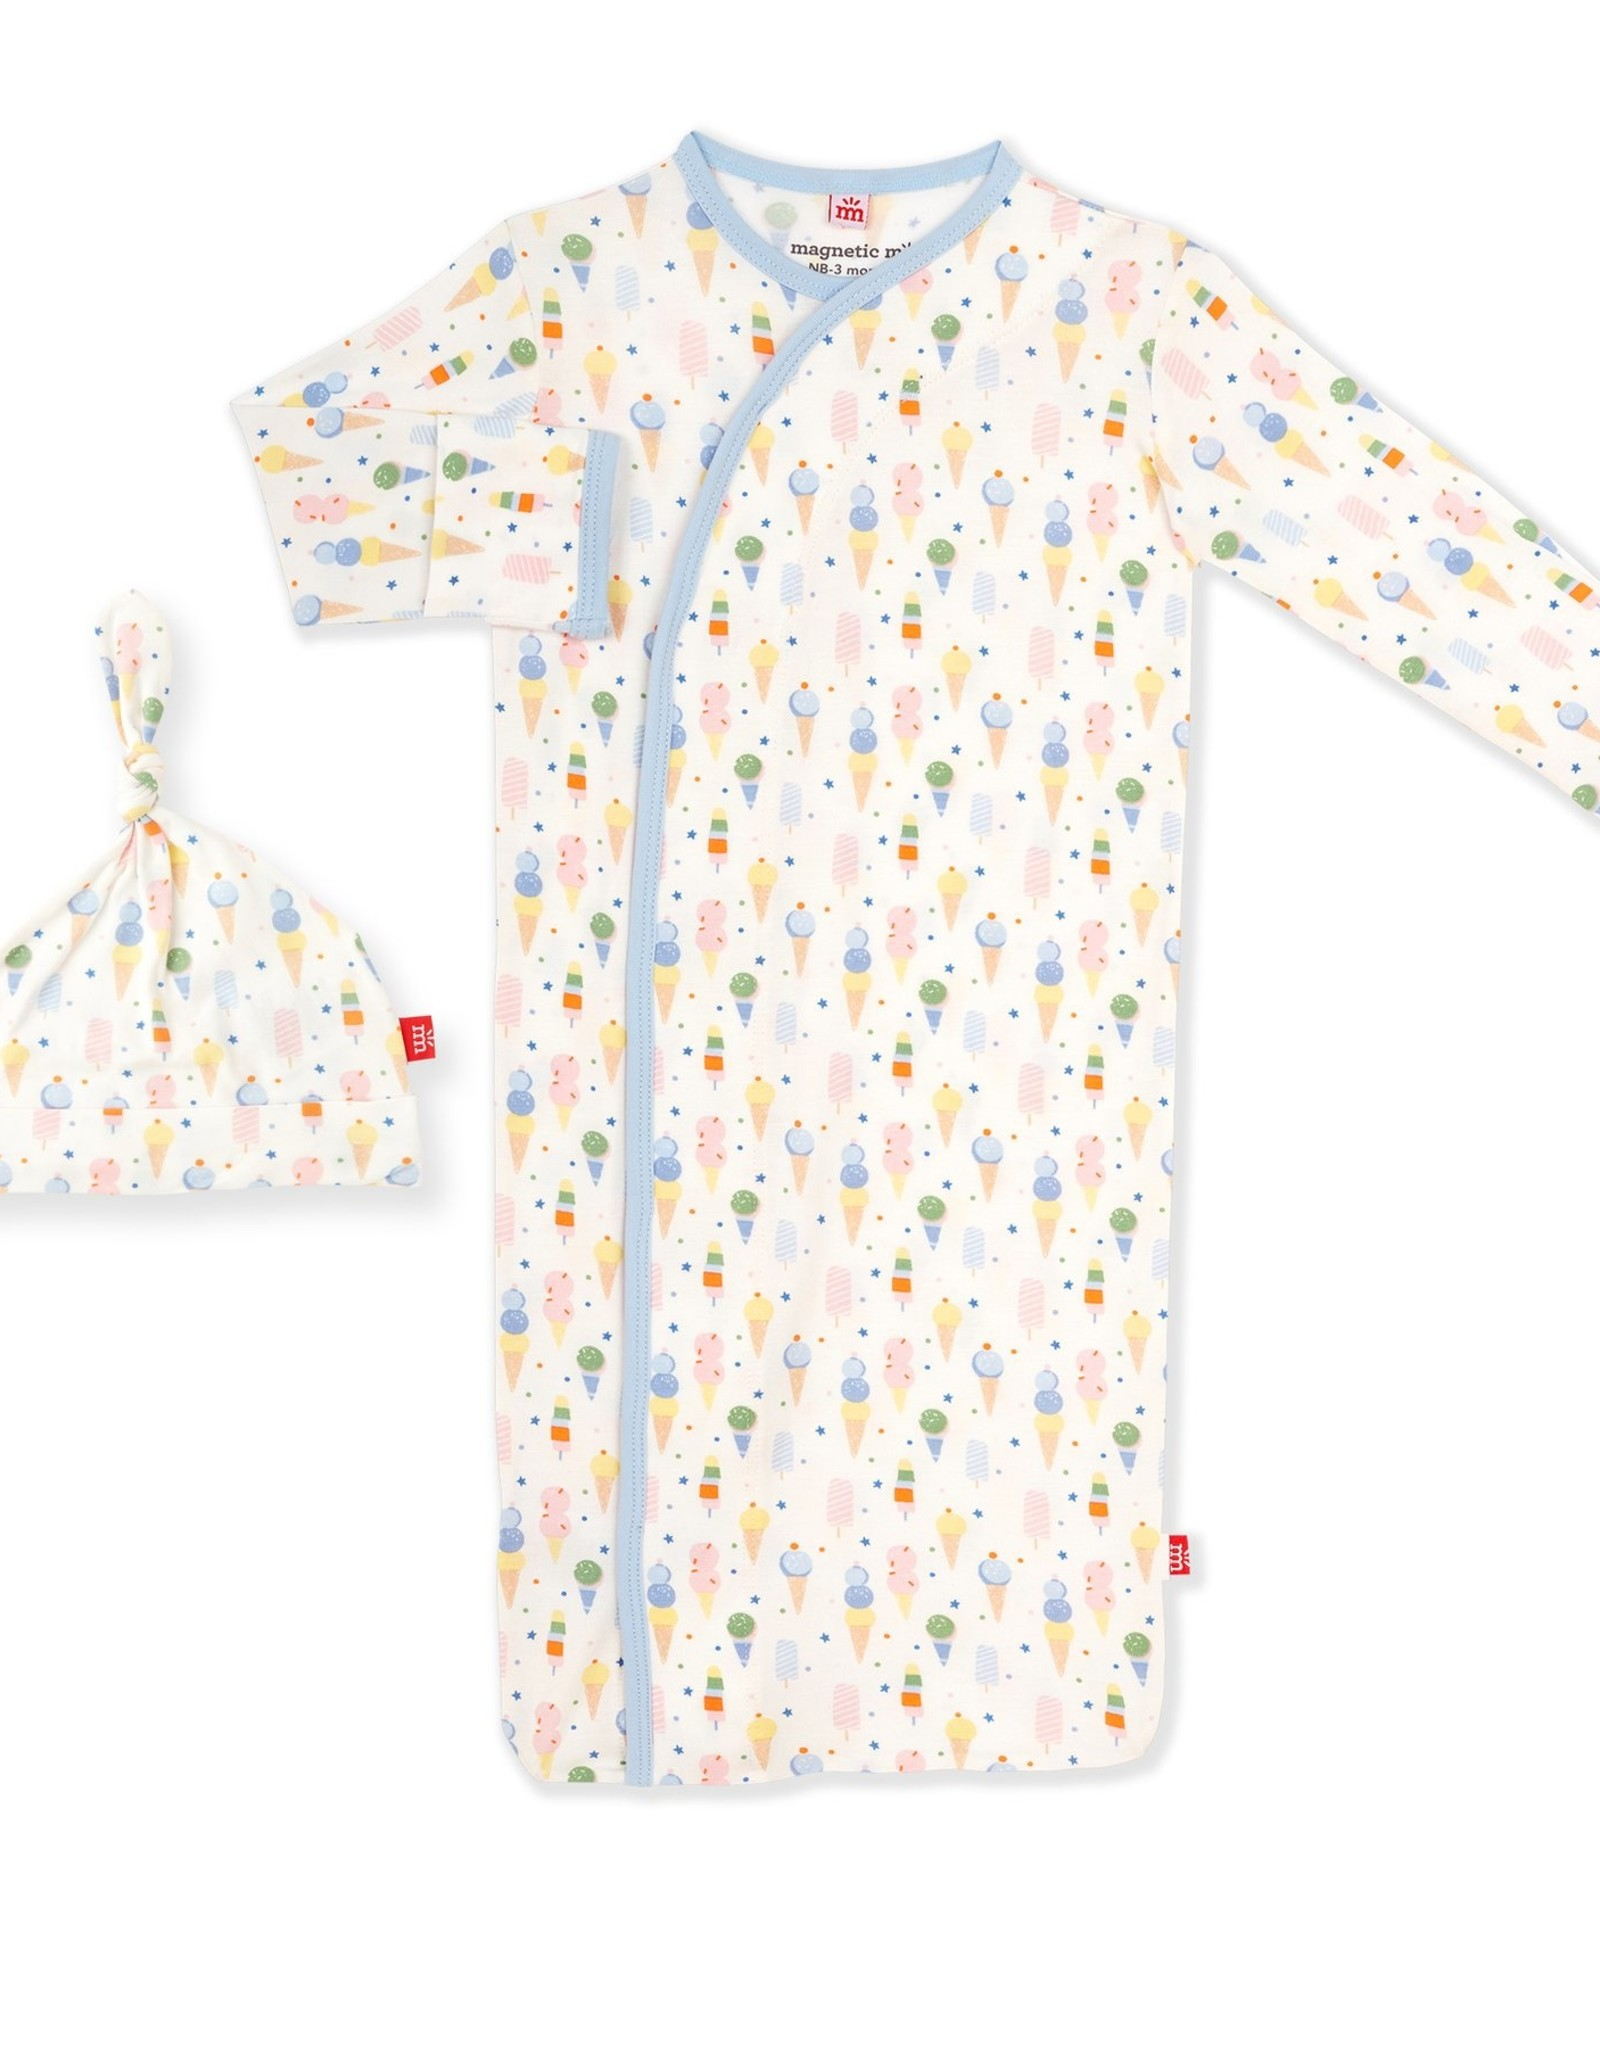 Magnetic Me Ice Ice Cream Baby Modal Magnetic Gown Set